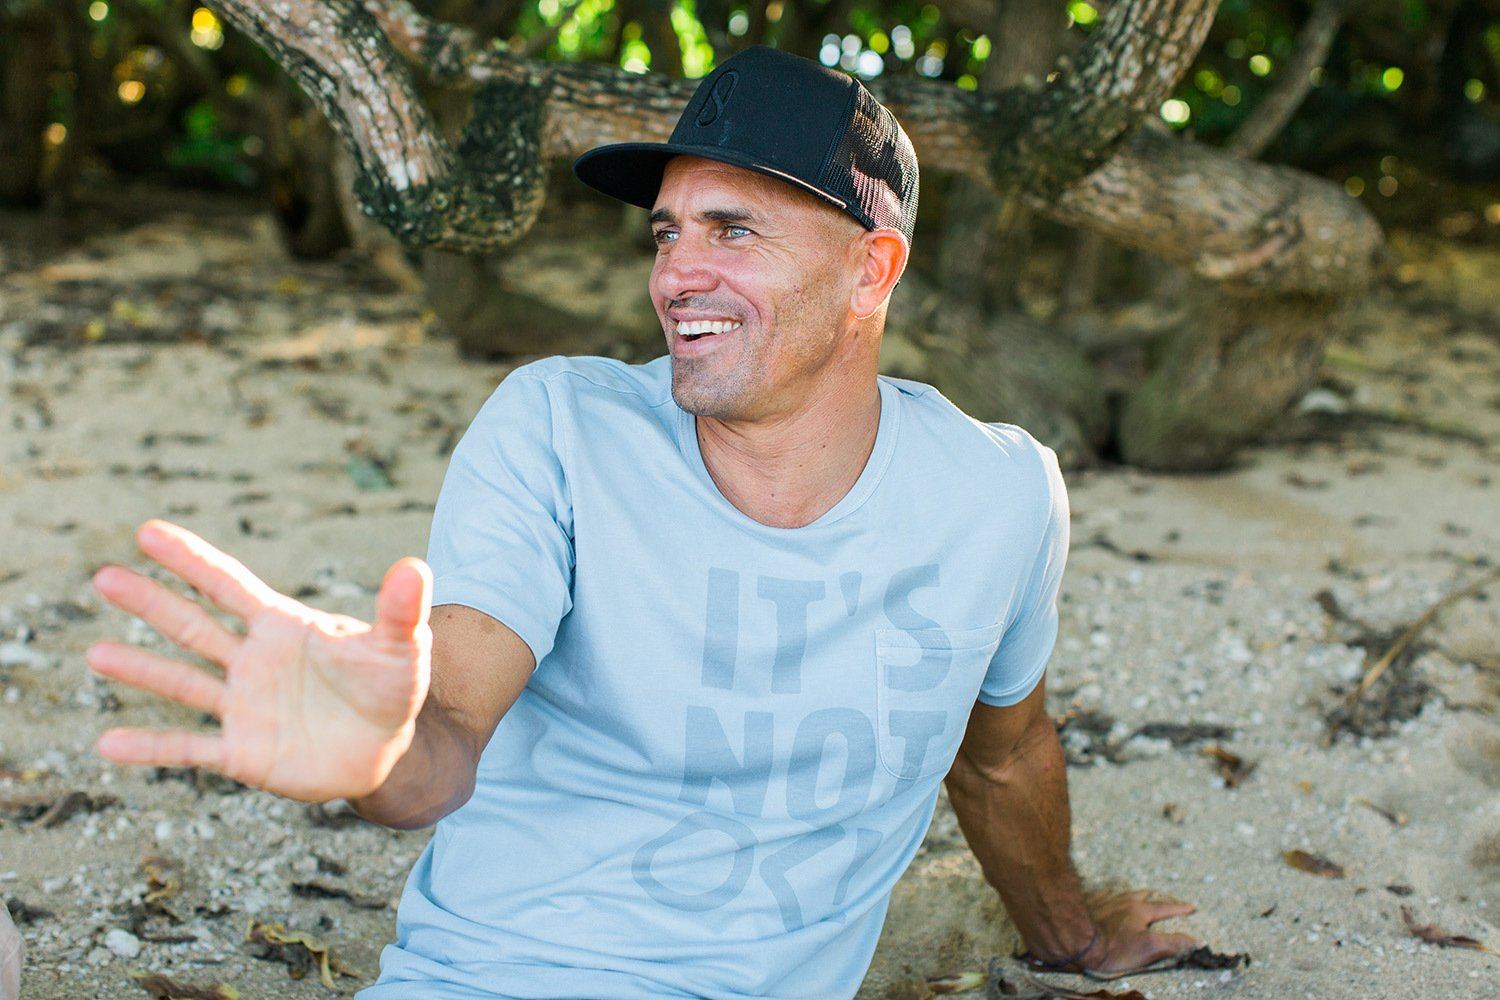 Photo 4 of 5 in Road-tripping Kauai with Pro Surfer Kelly Slater